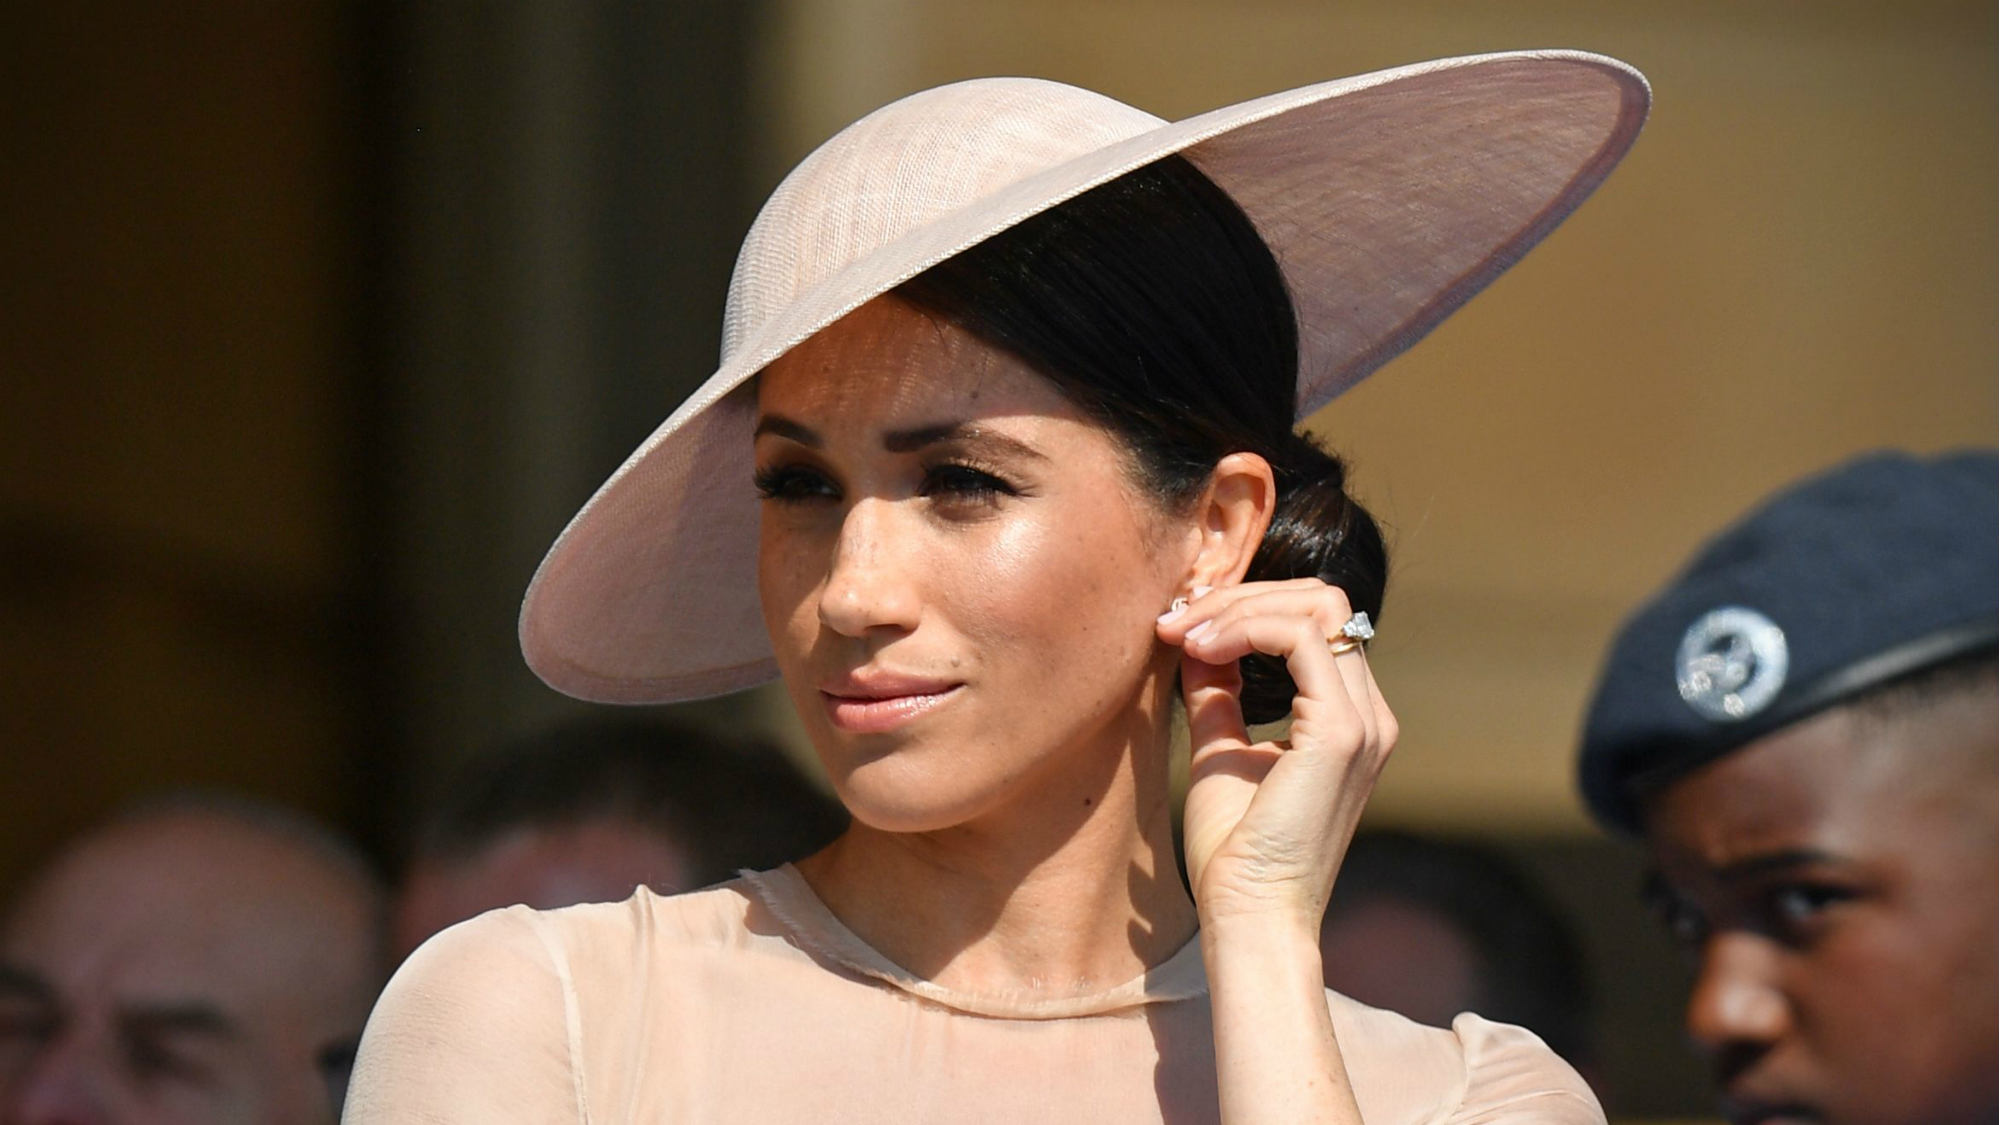 Meghan Markle Just Crashed Another Fashion Brand S Website